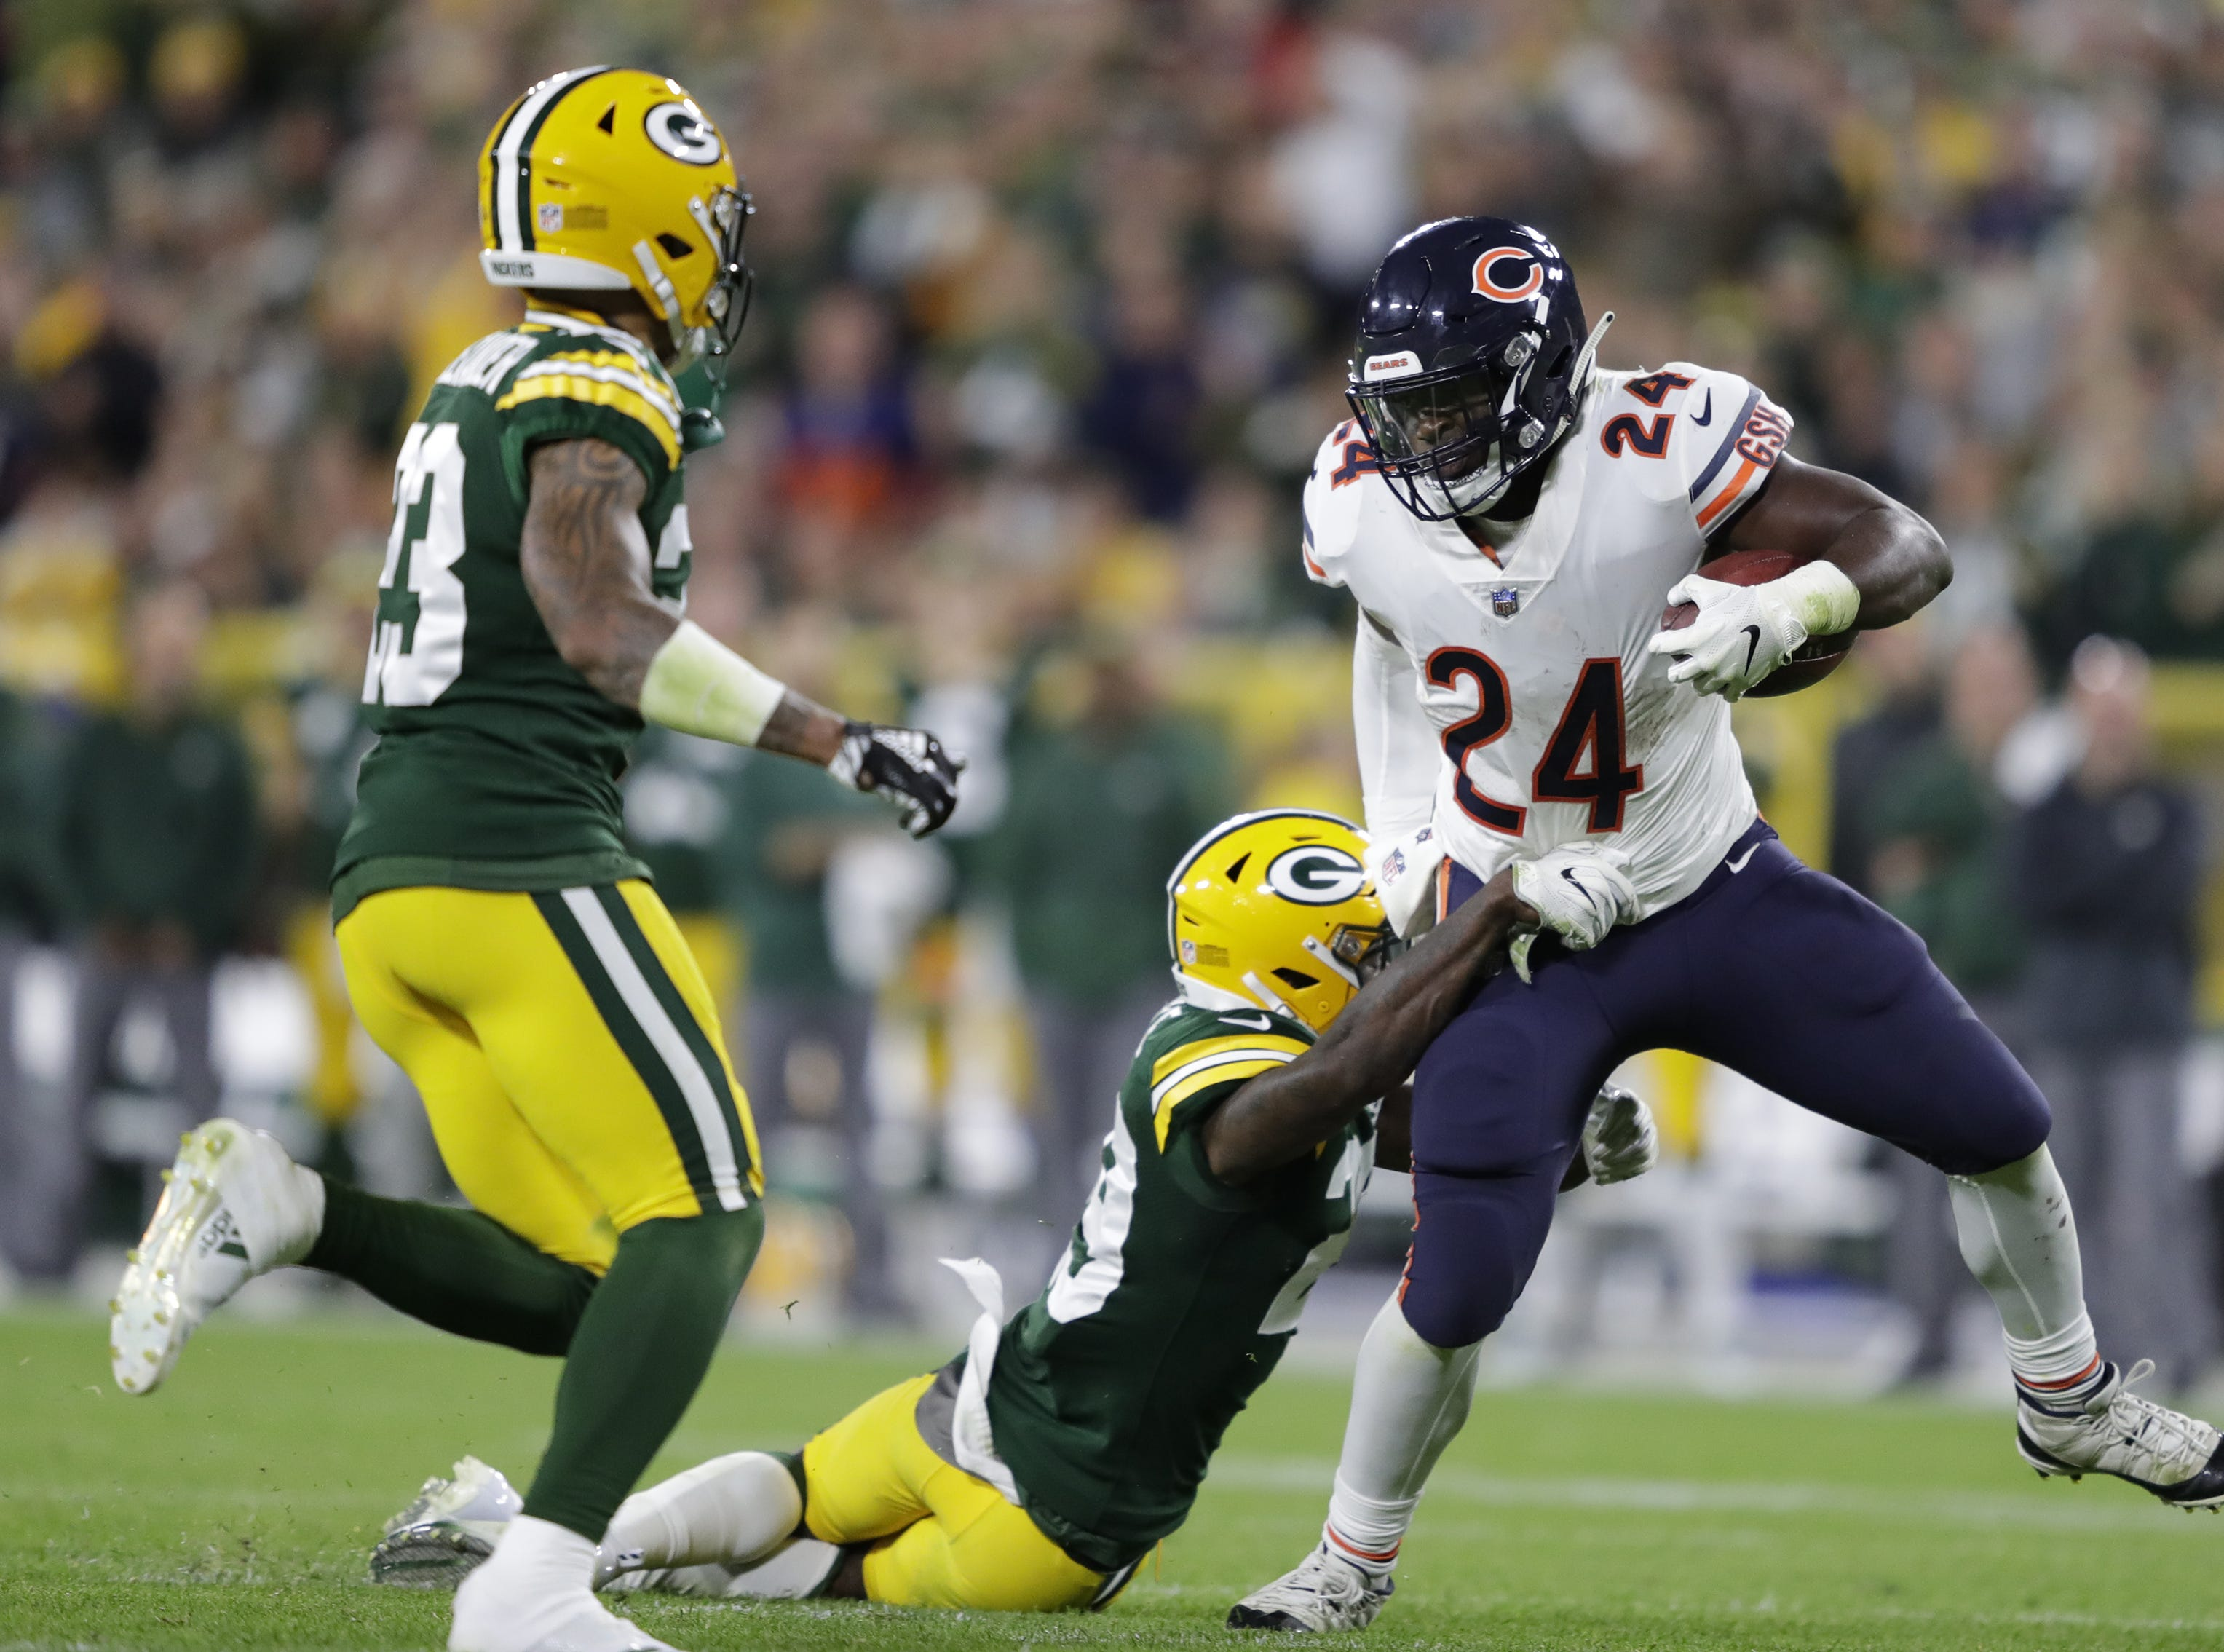 Chicago Bears running back Jordan Howard (24) is tackled by Green Bay Packers defensive back Kentrell Brice (29) in the fourth quarter Sunday, Sept. 9, 2018, at Lambeau Field in Green Bay, Wis.